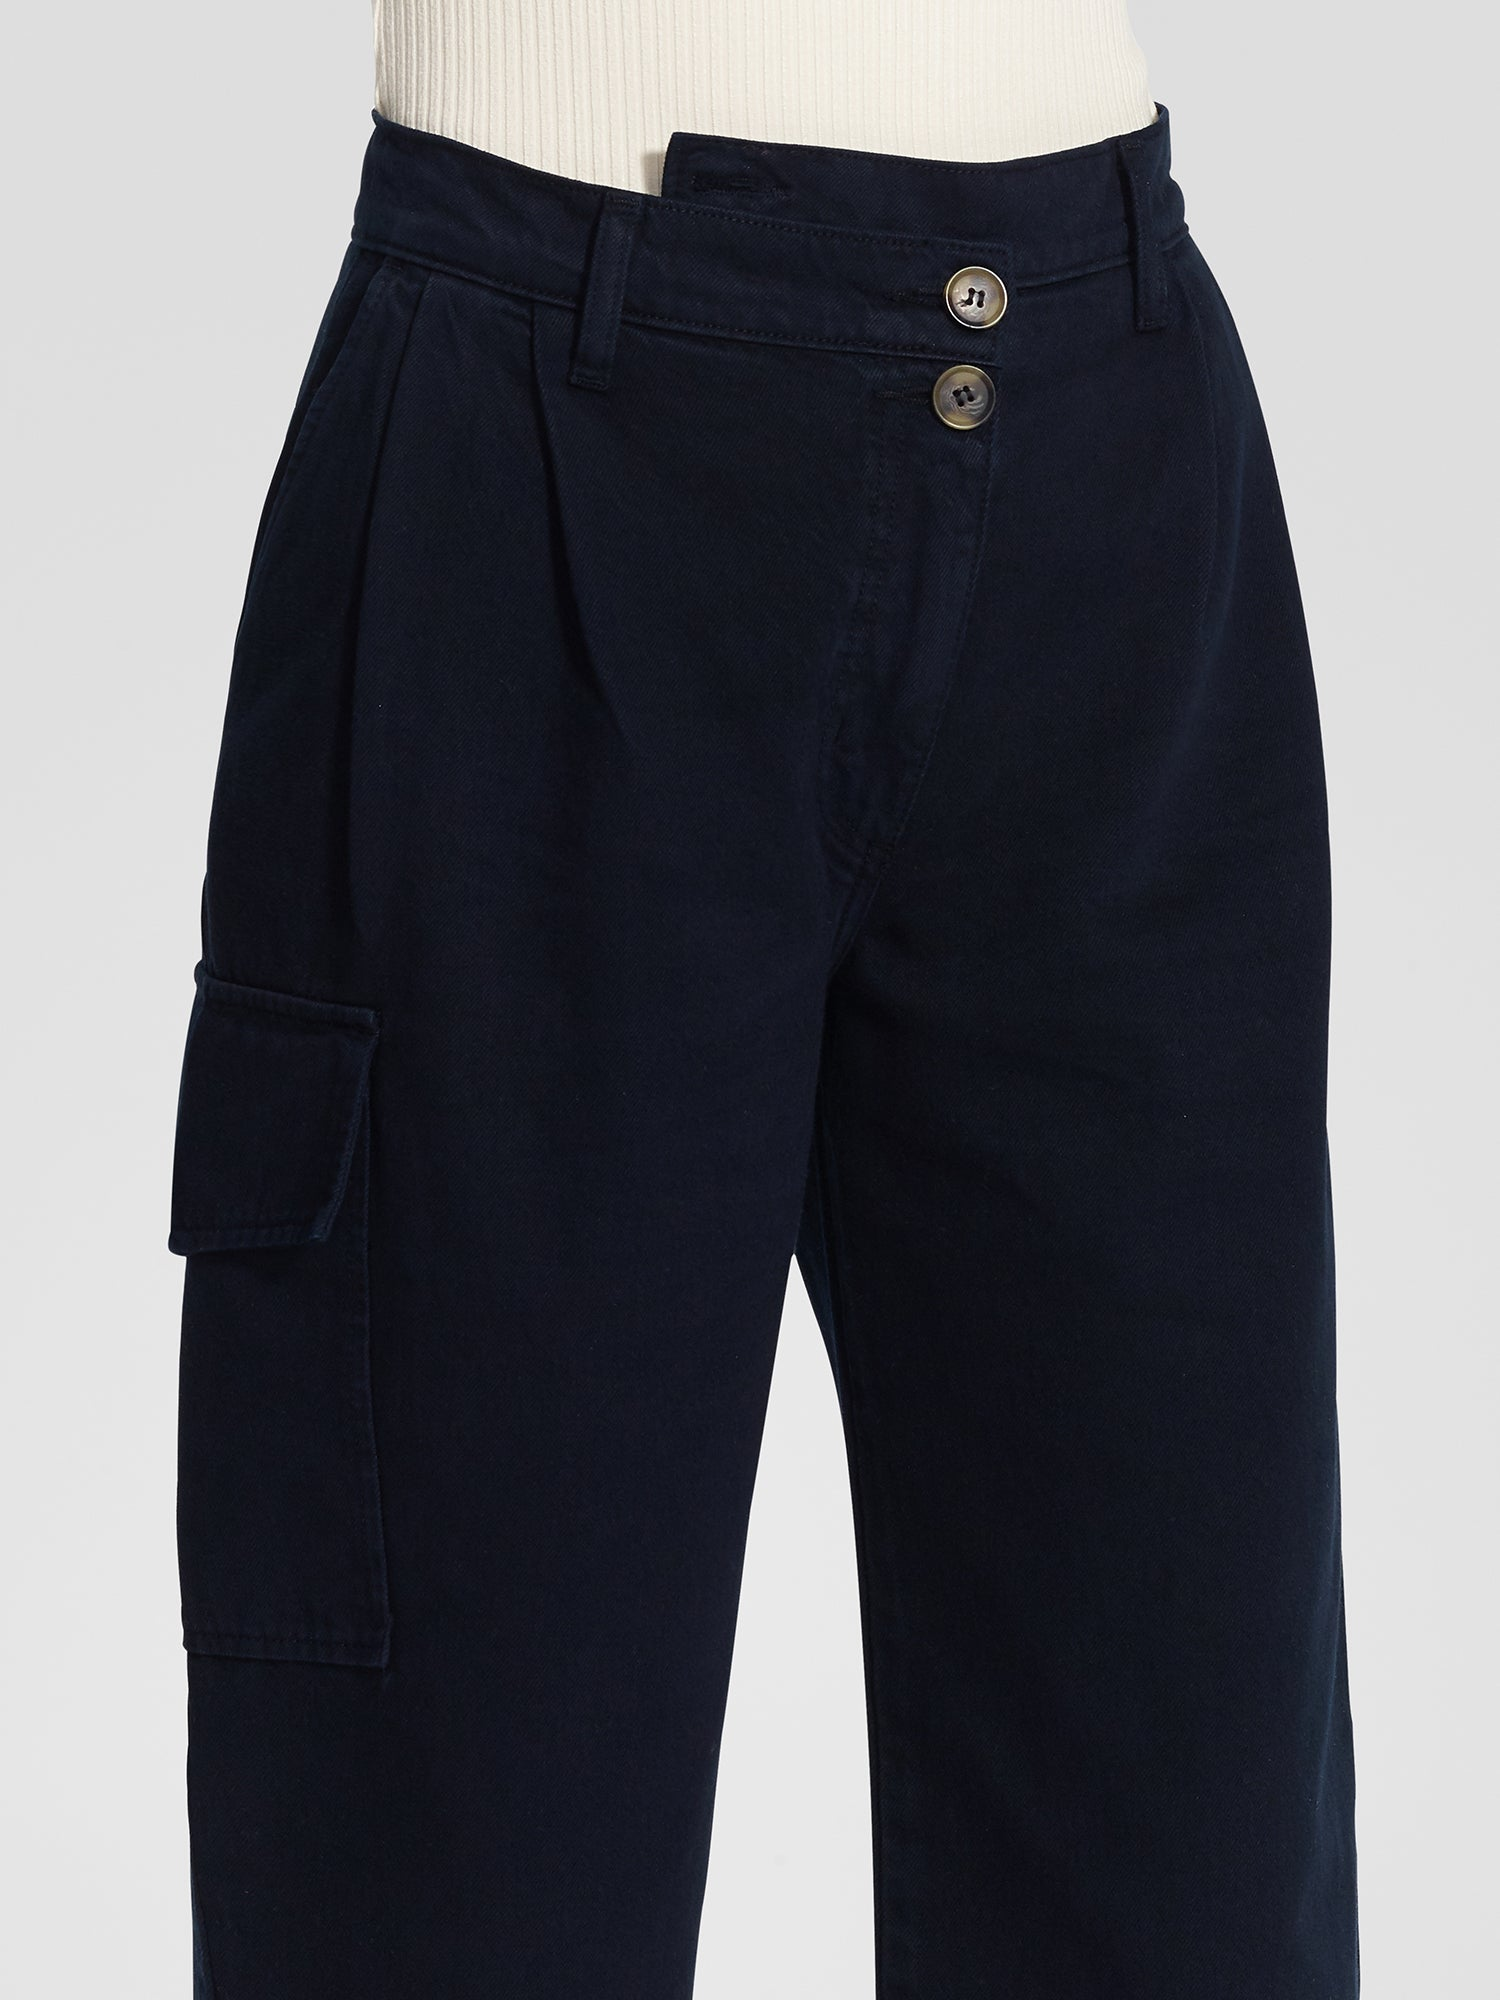 Angled Pleat Pant Sailor